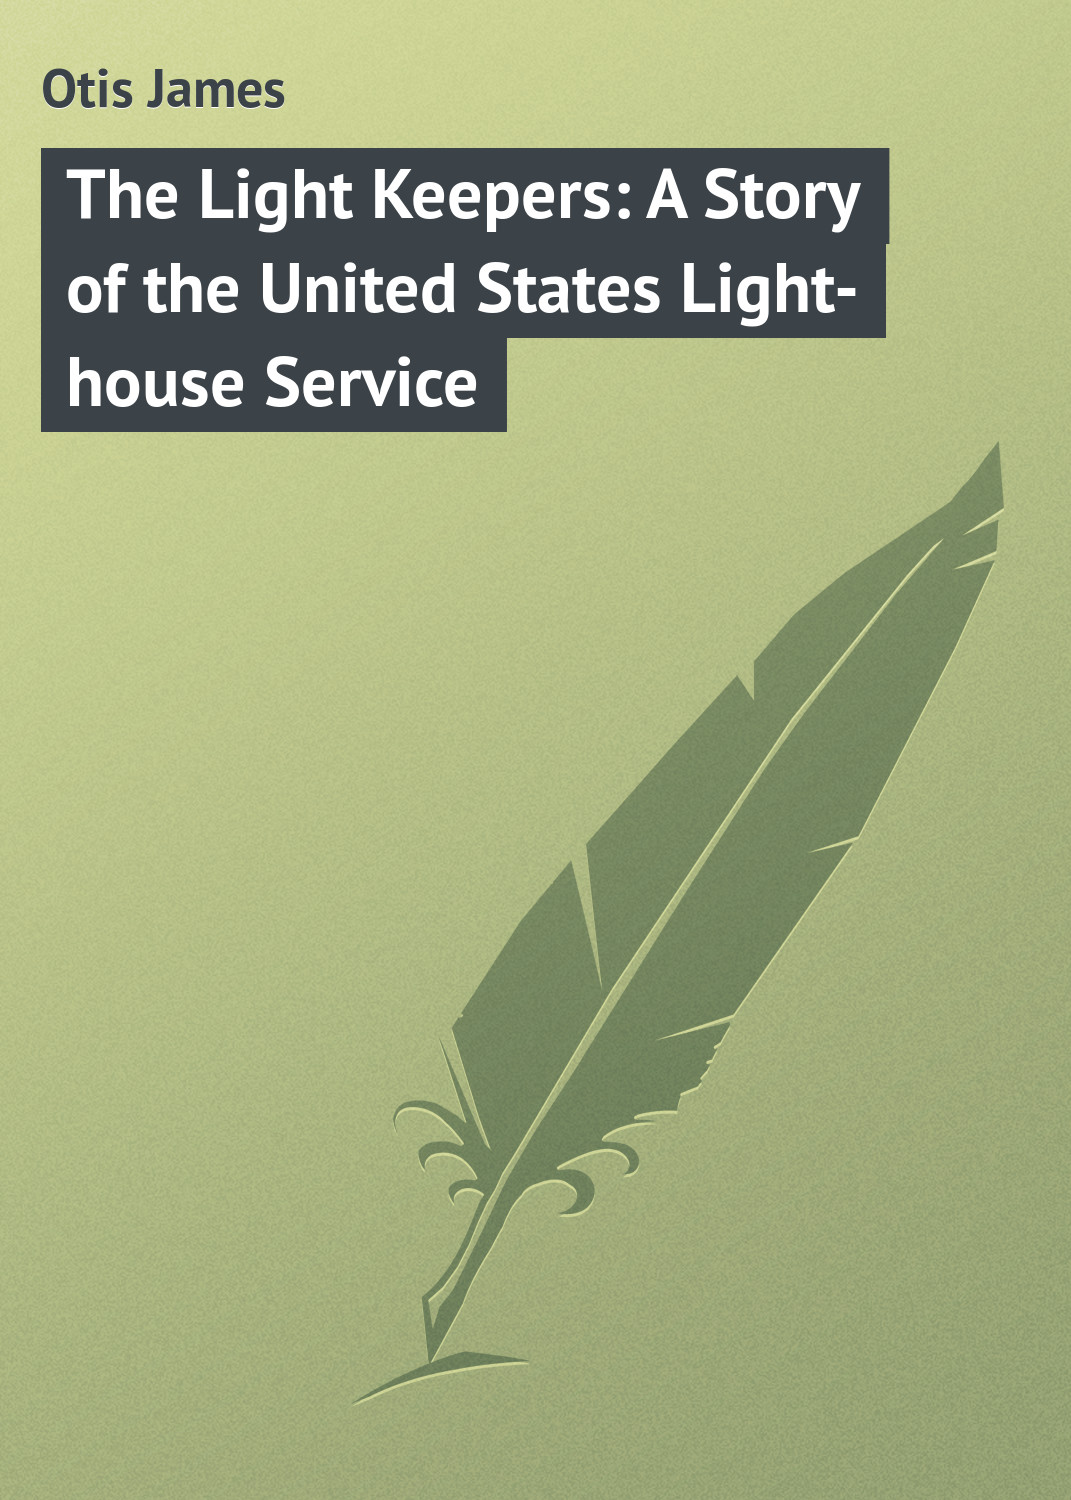 Otis James The Light Keepers: A Story of the United States Light-house Service mcs marlboro classics свитер